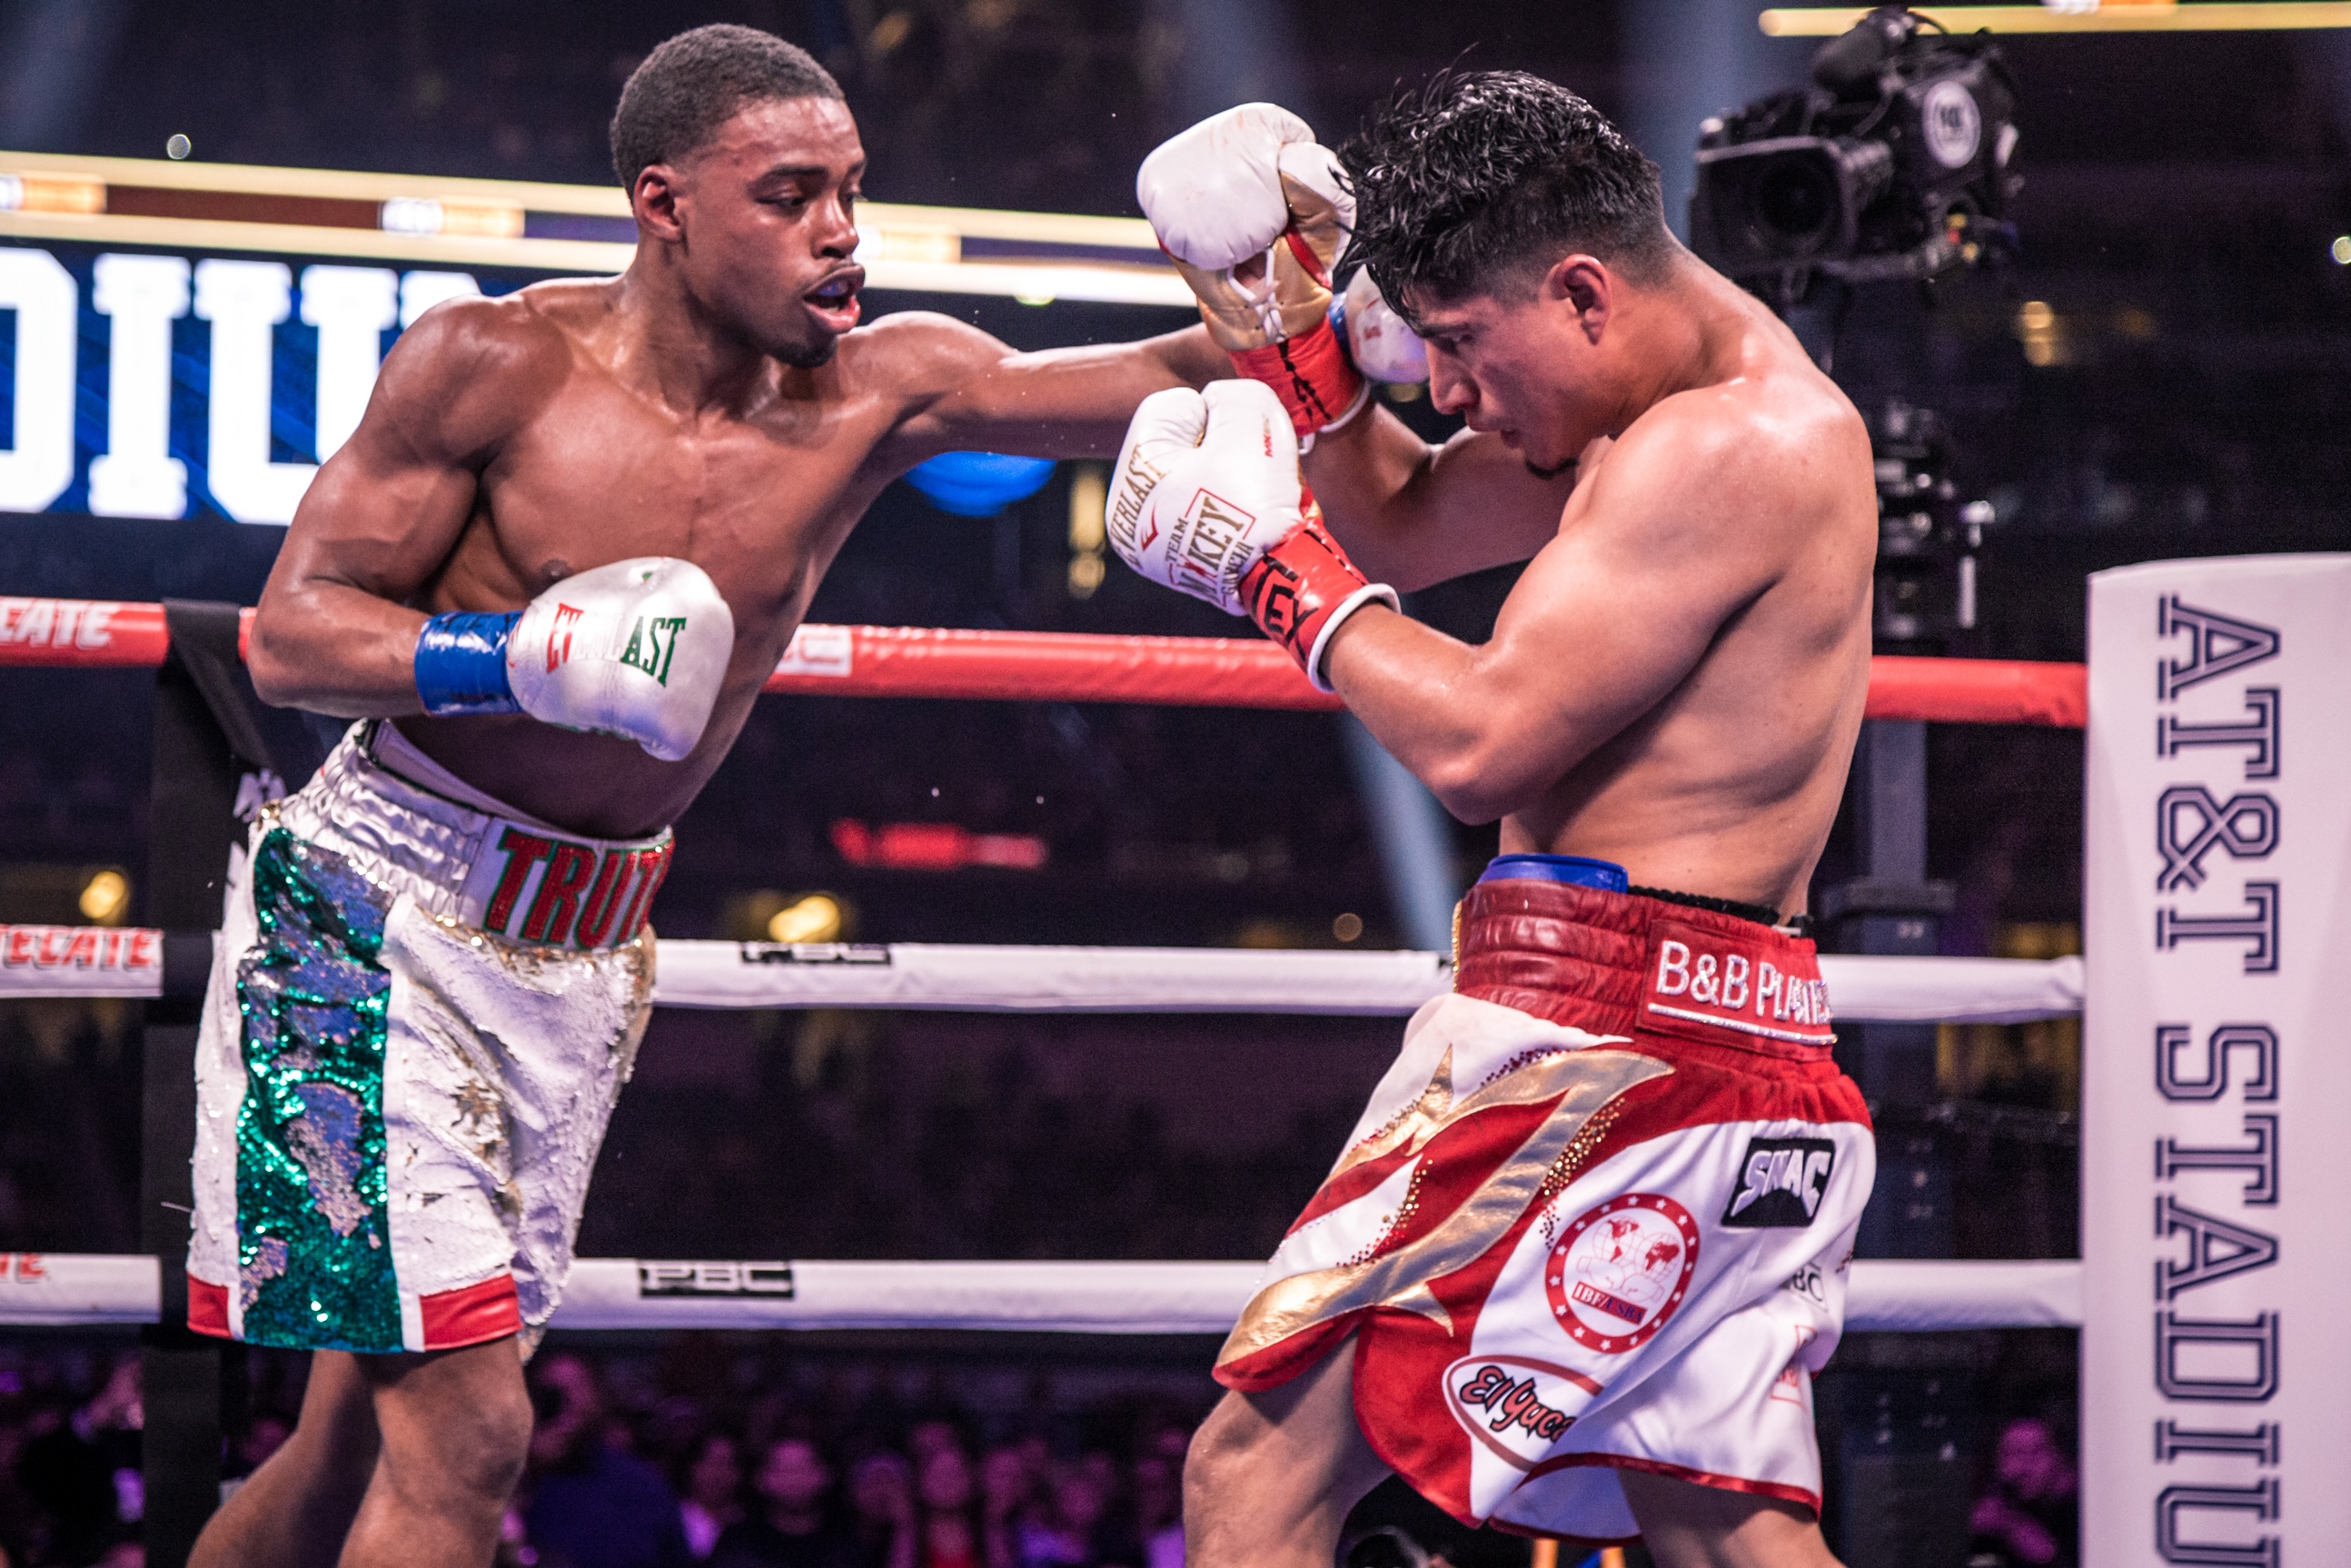 C0C04B2A 37EA 40CA ADC8 48DF7246177C - Spence vs. Garcia: Fans or Family?